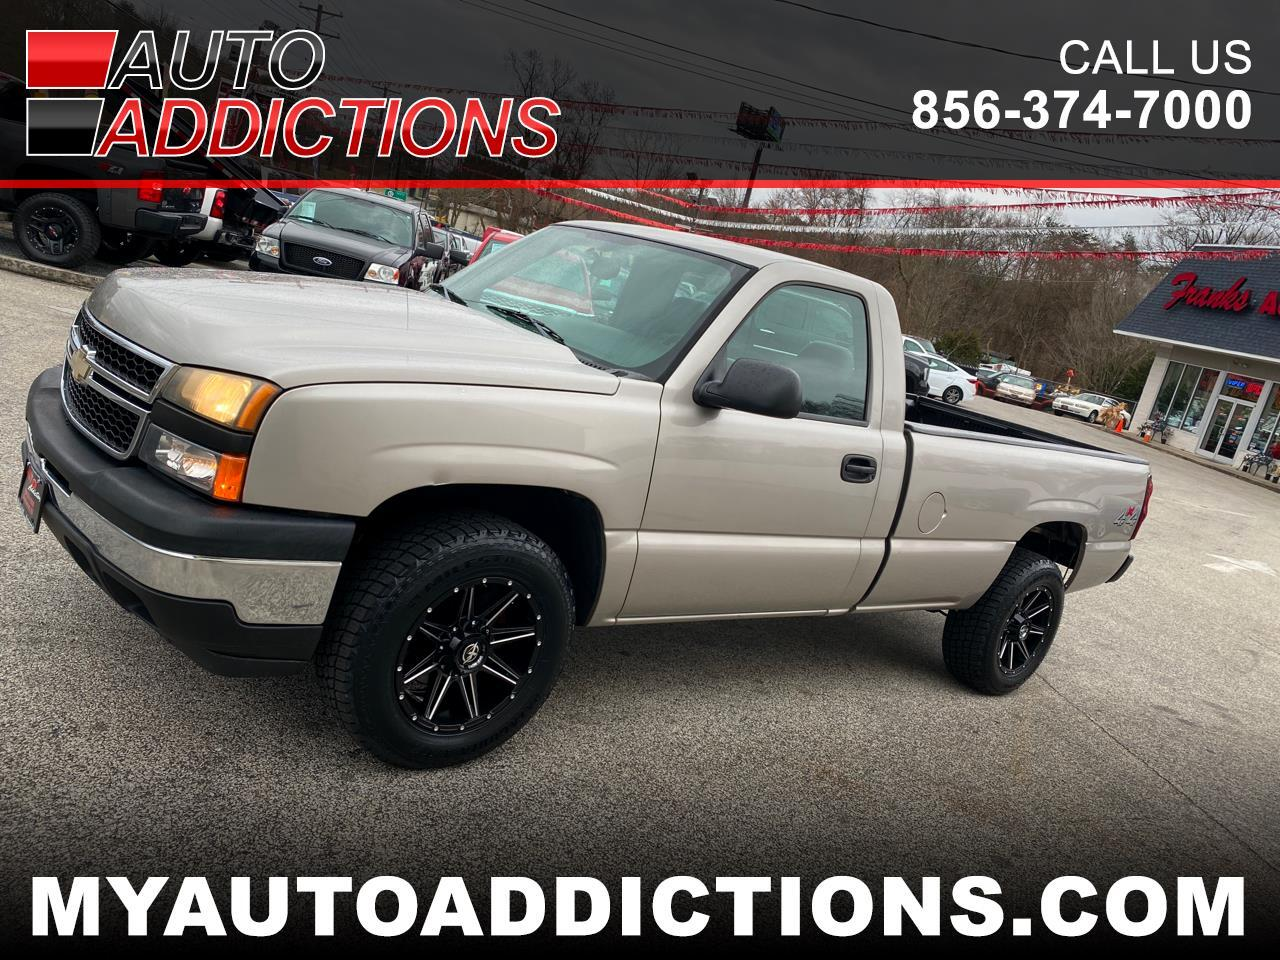 Chevrolet Silverado 1500 1LT Regular Cab Long Box 4WD 2006